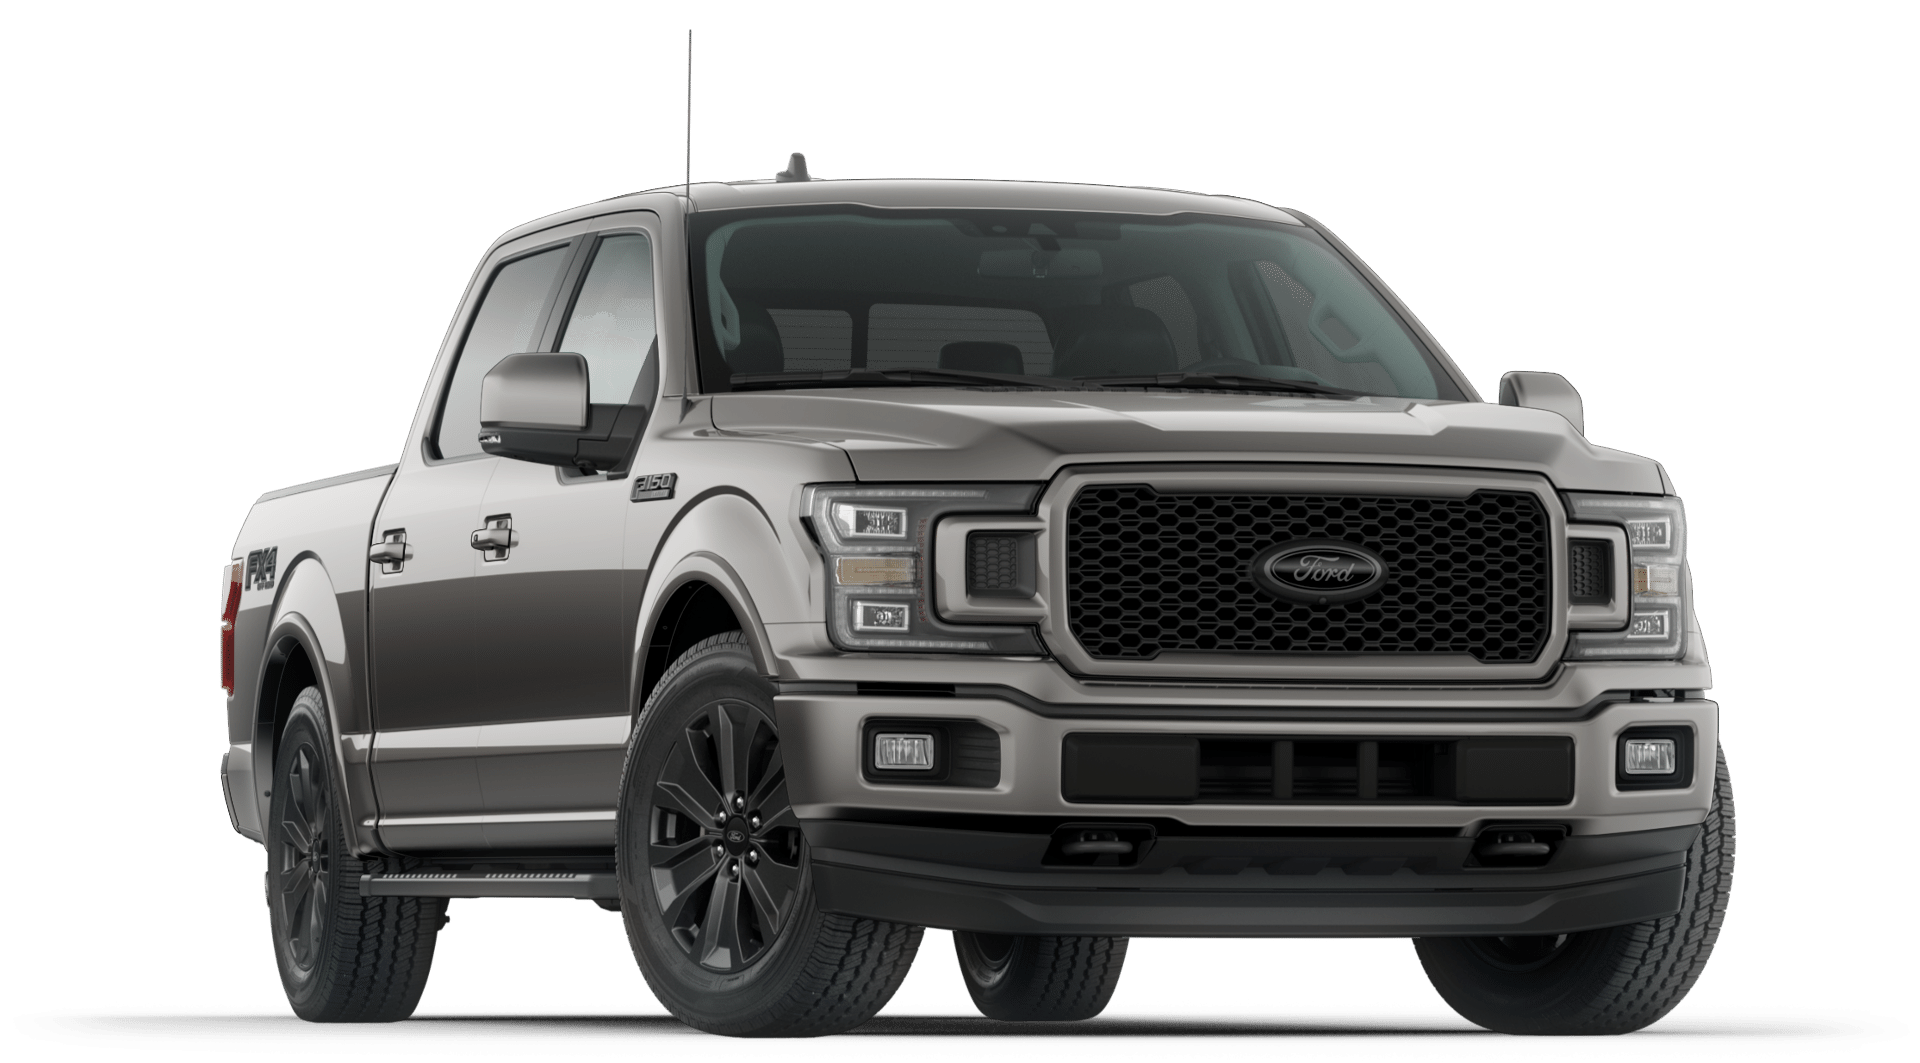 2020 Ford F150 Build & Price Ford f150, Commercial